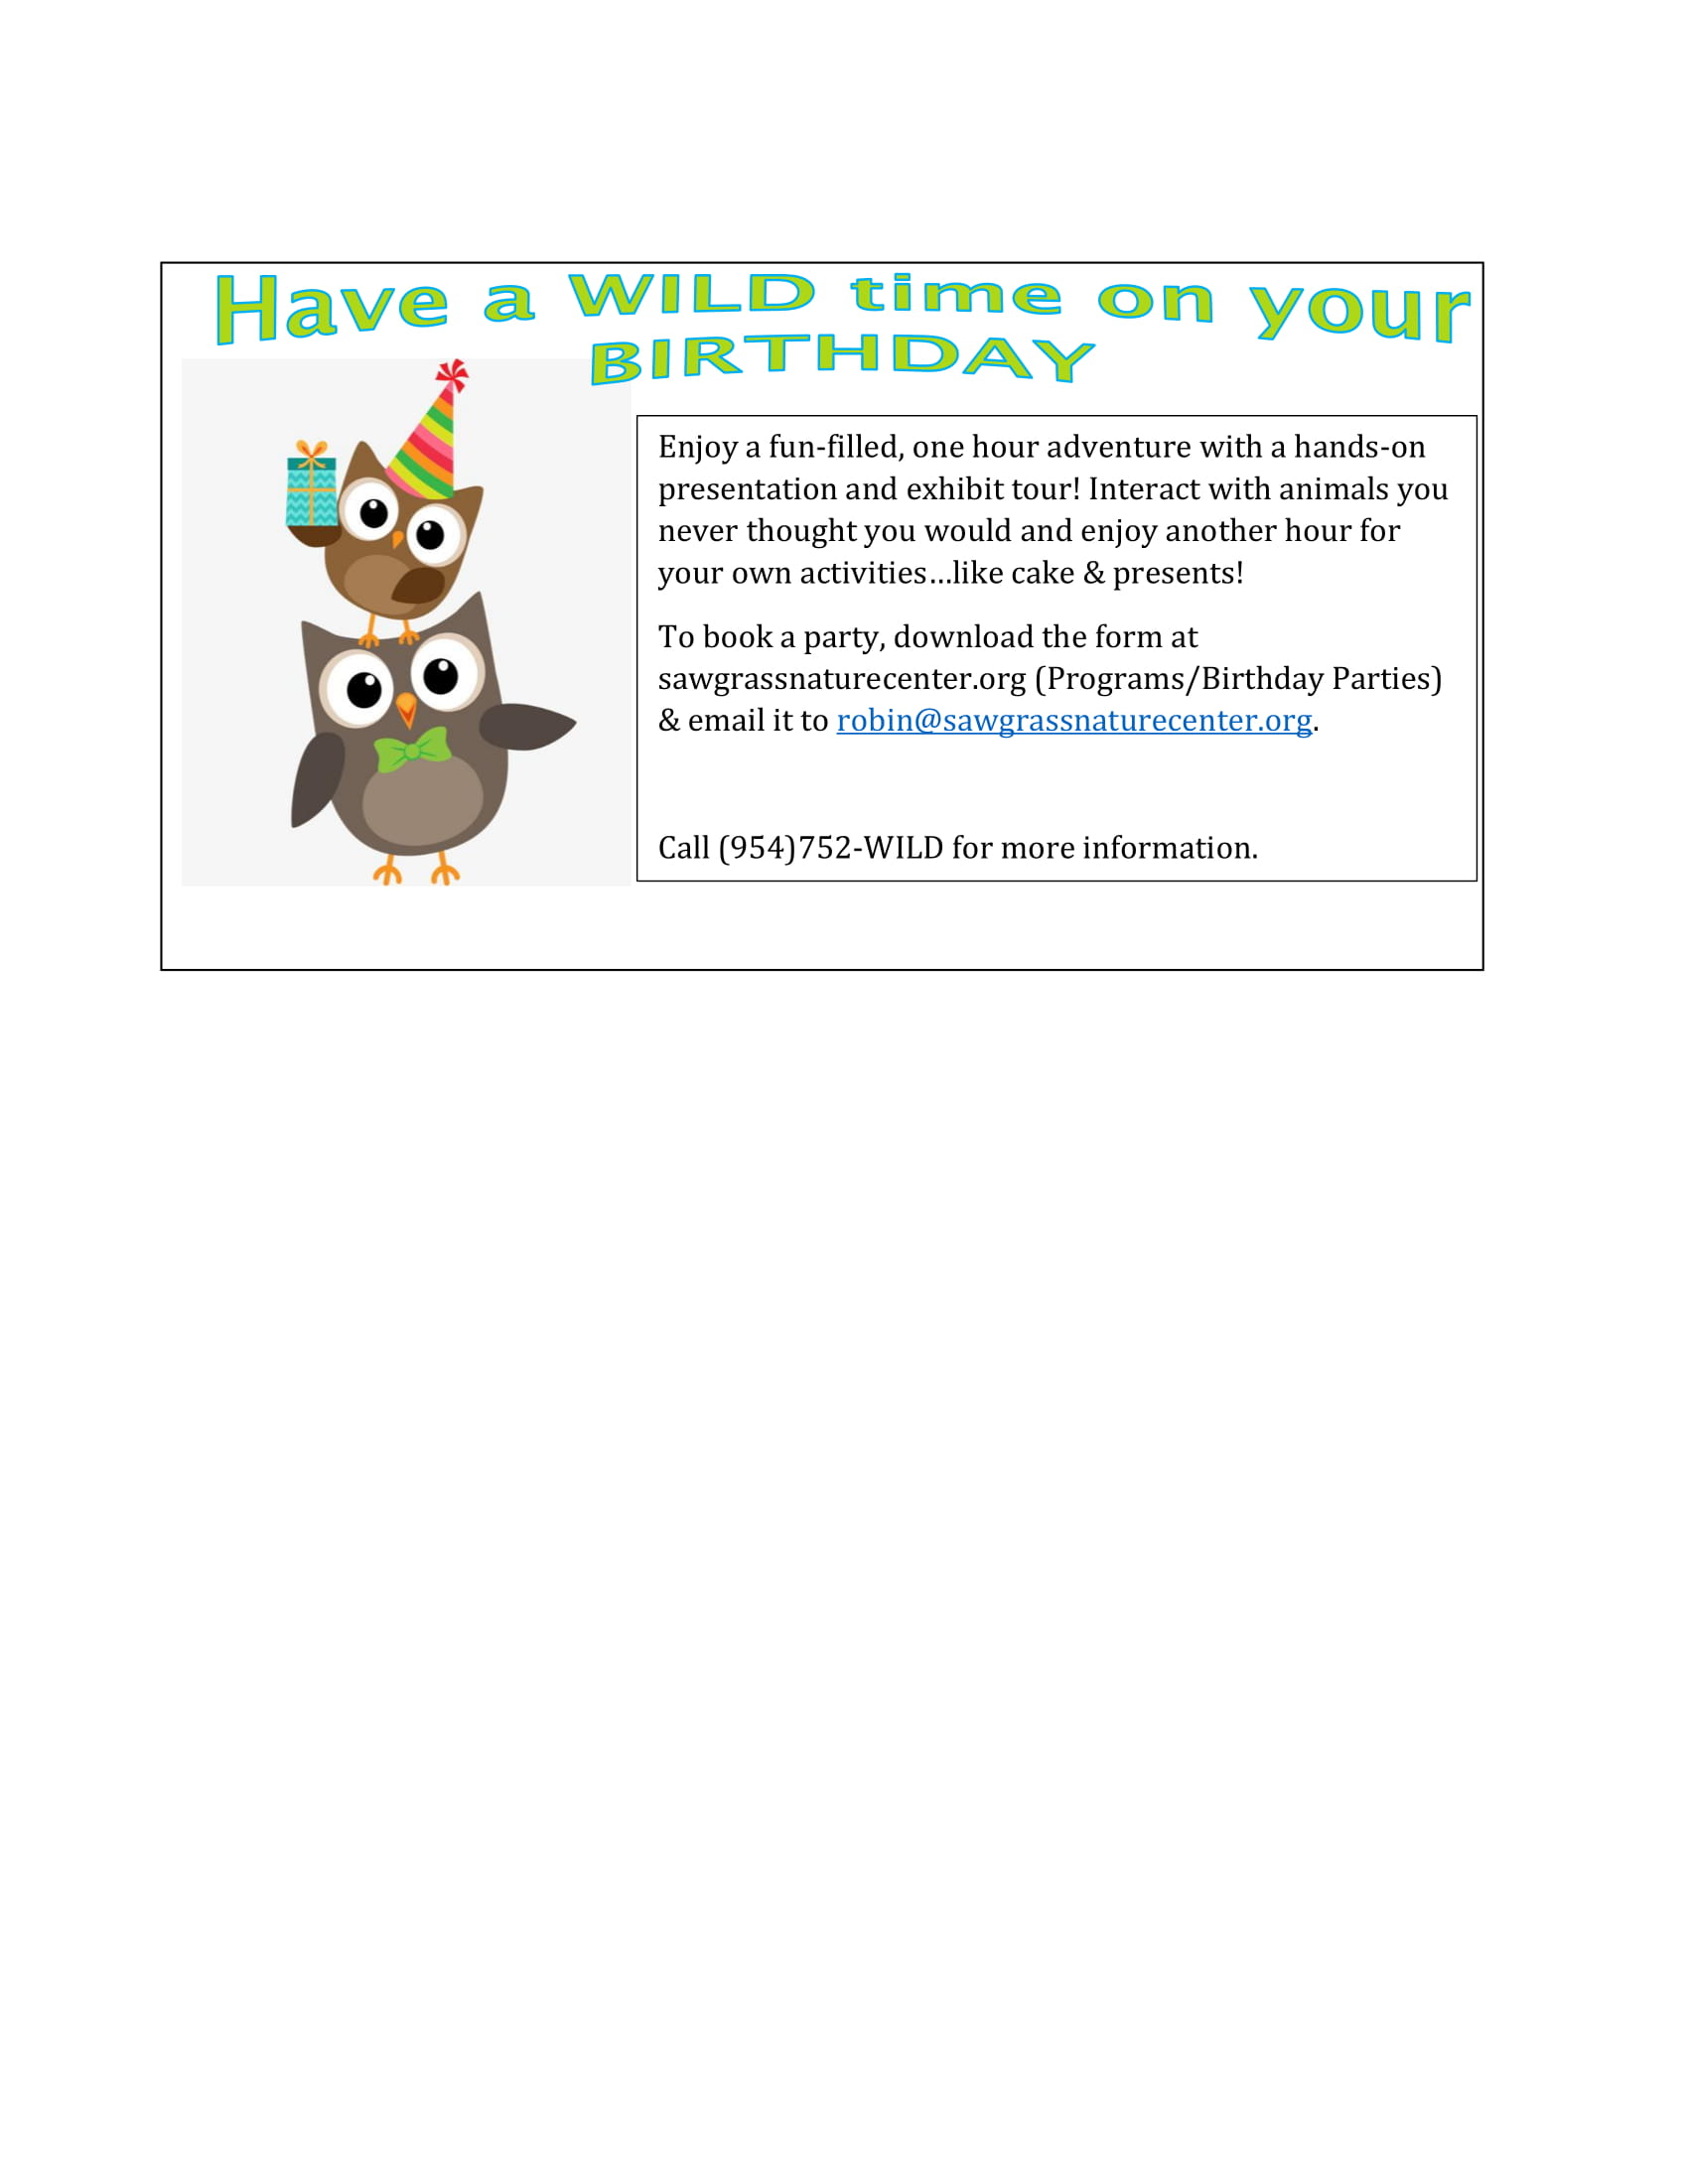 Birthday Parties | Sawgrass Nature Center & Wildlife Hospital